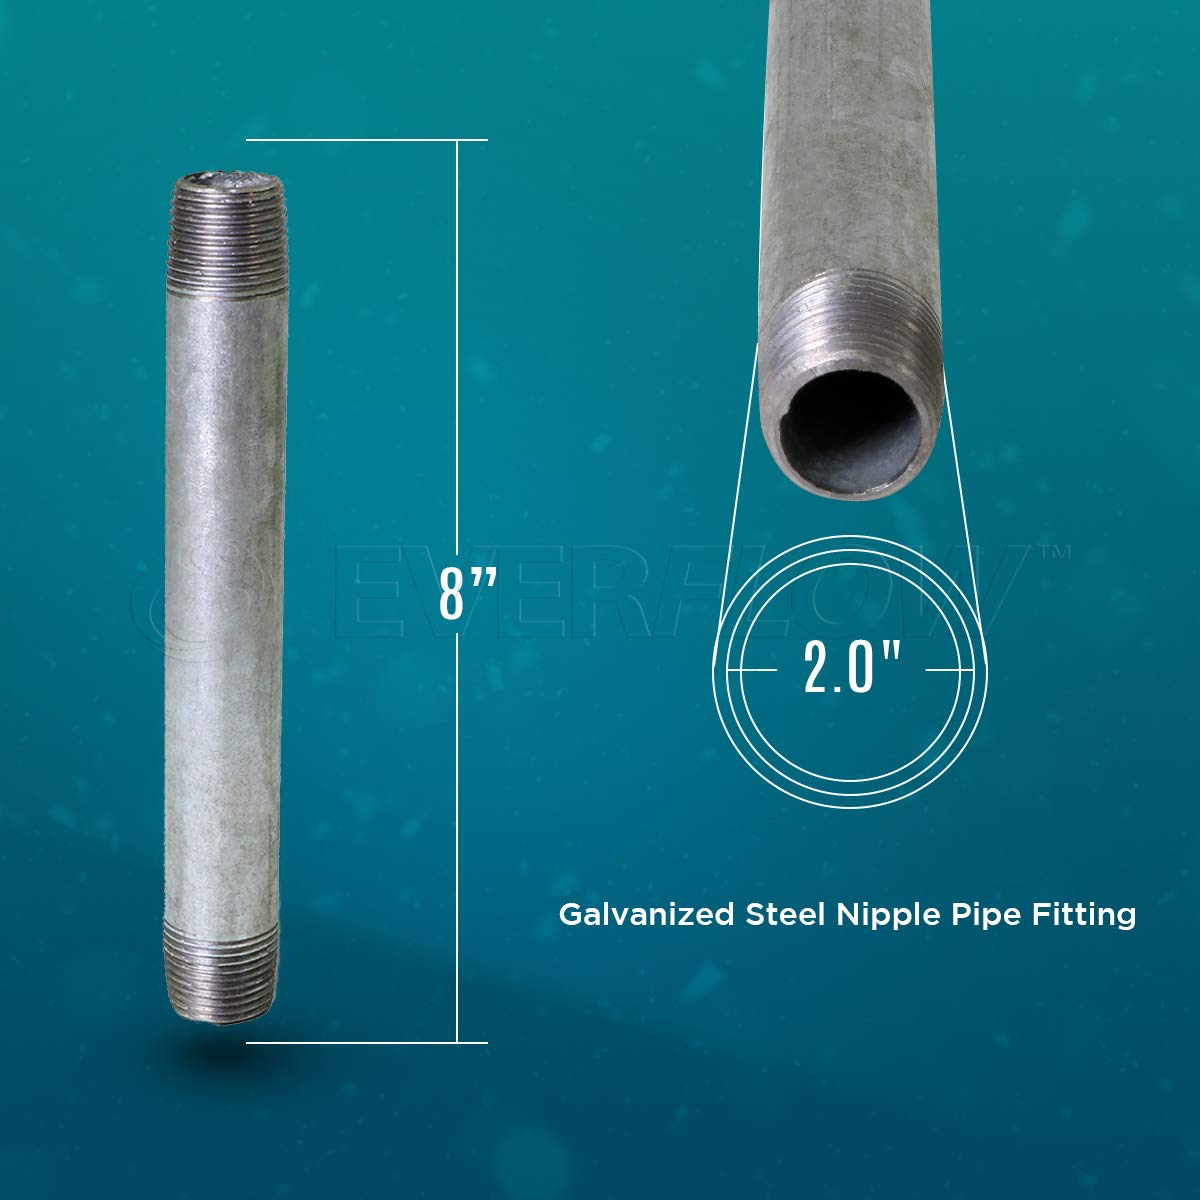 Everflow NPGL2050-10 Connectors Galvanized Pack of 10 2 x 5 Used To Build DIY Furniture Pre Cut Industrial Steel Nipple Pipe Threaded Pipes and Fittings